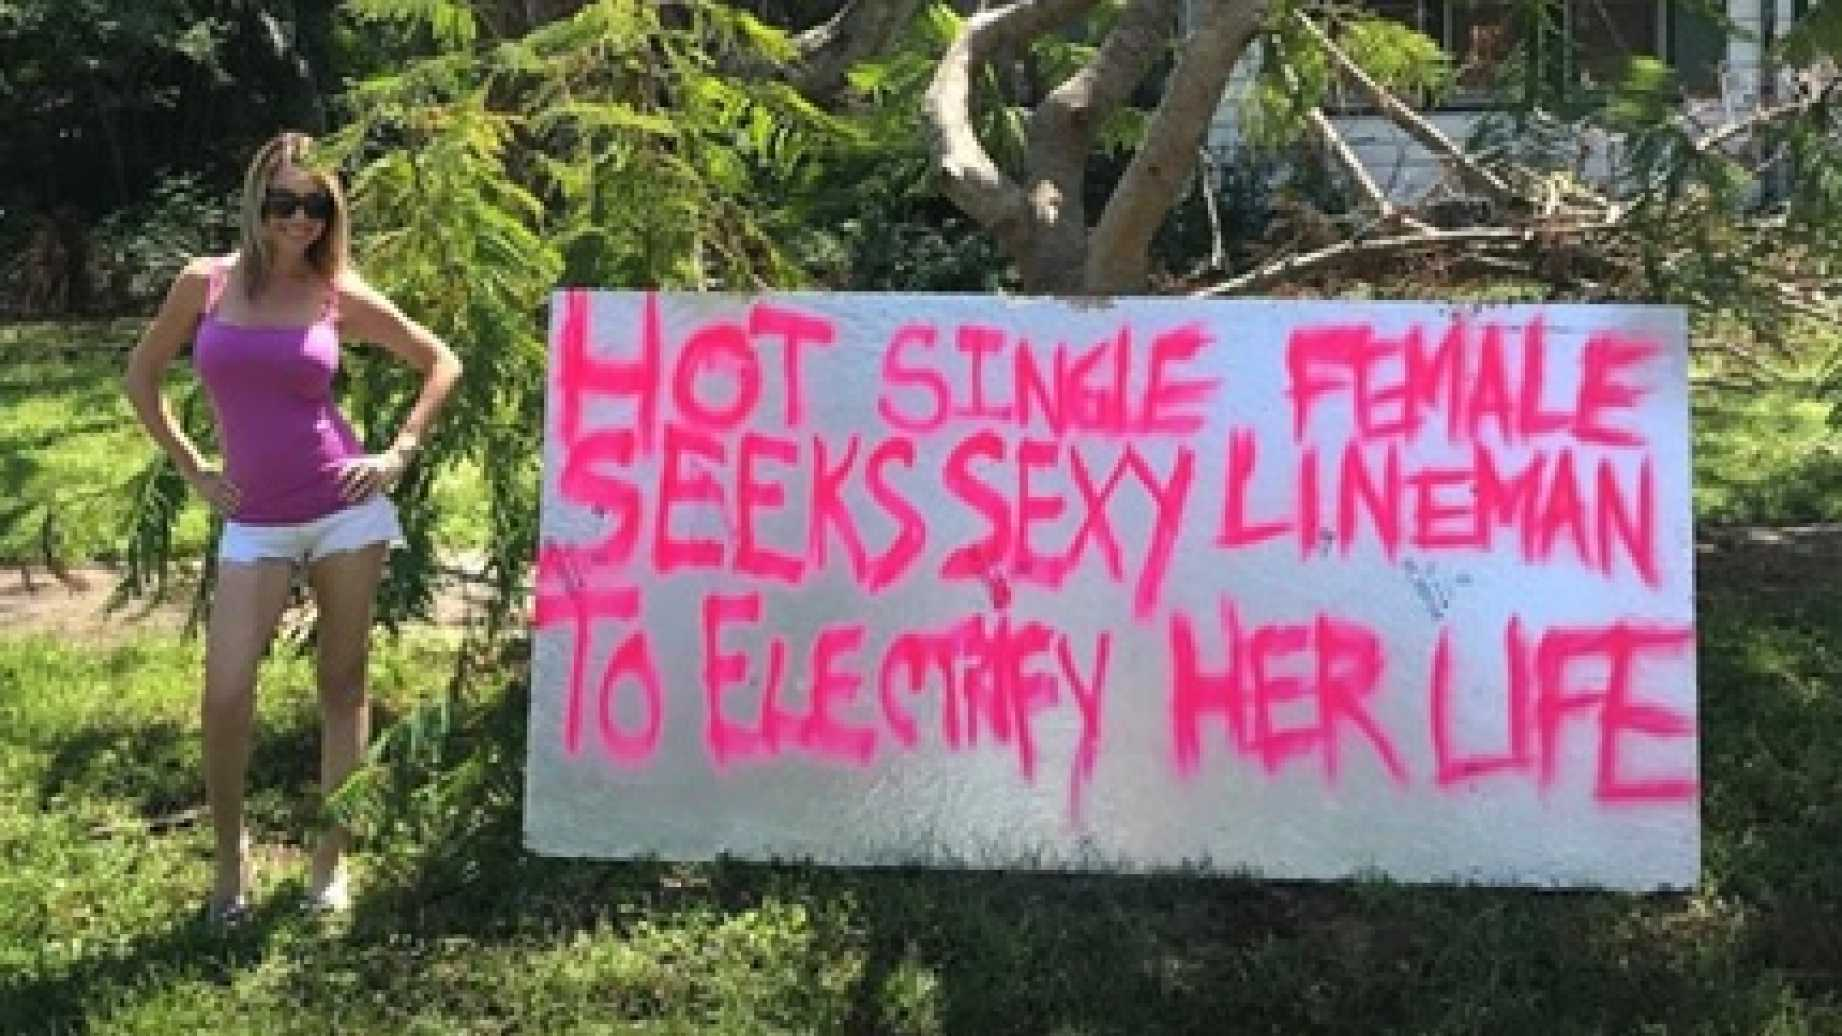 Sexy Florida Woman Makes Plea For Electricity